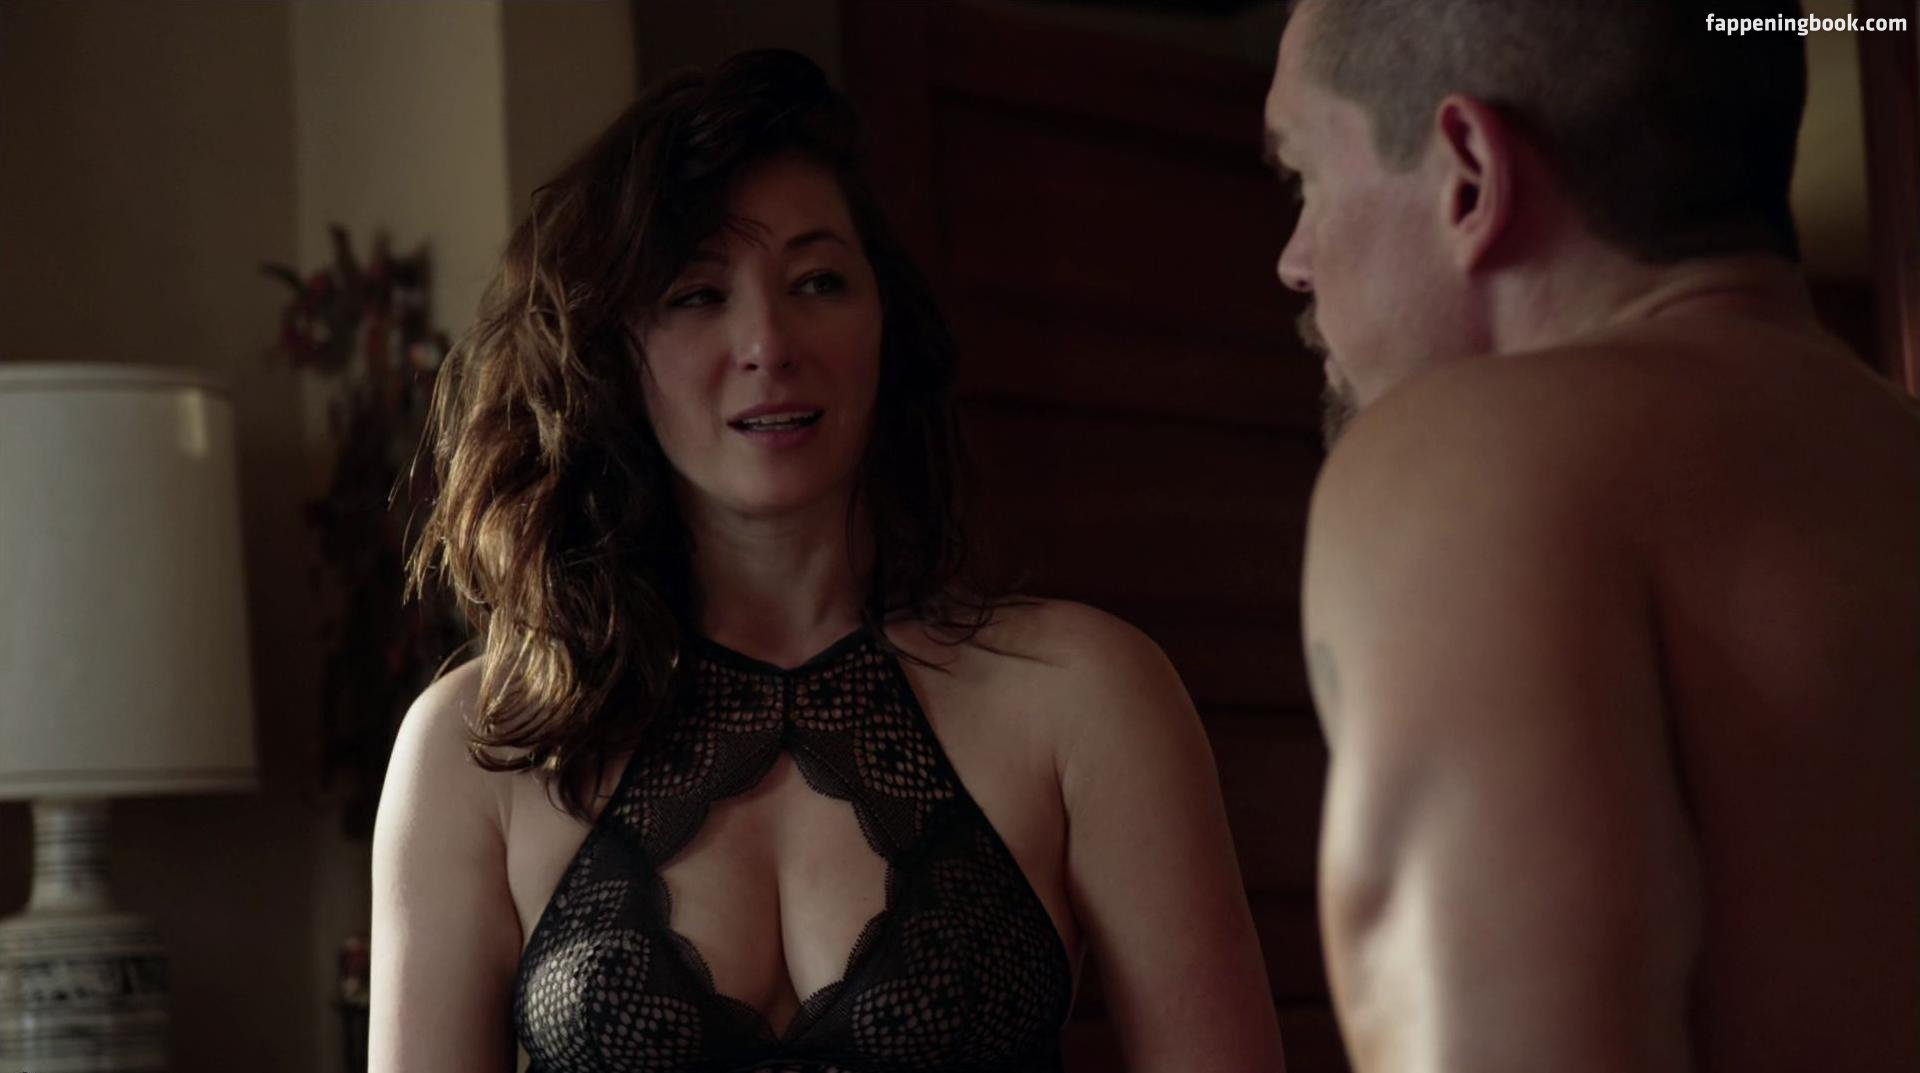 Isidora Goreshter Nude Sexy The Fappening Uncensored Photo